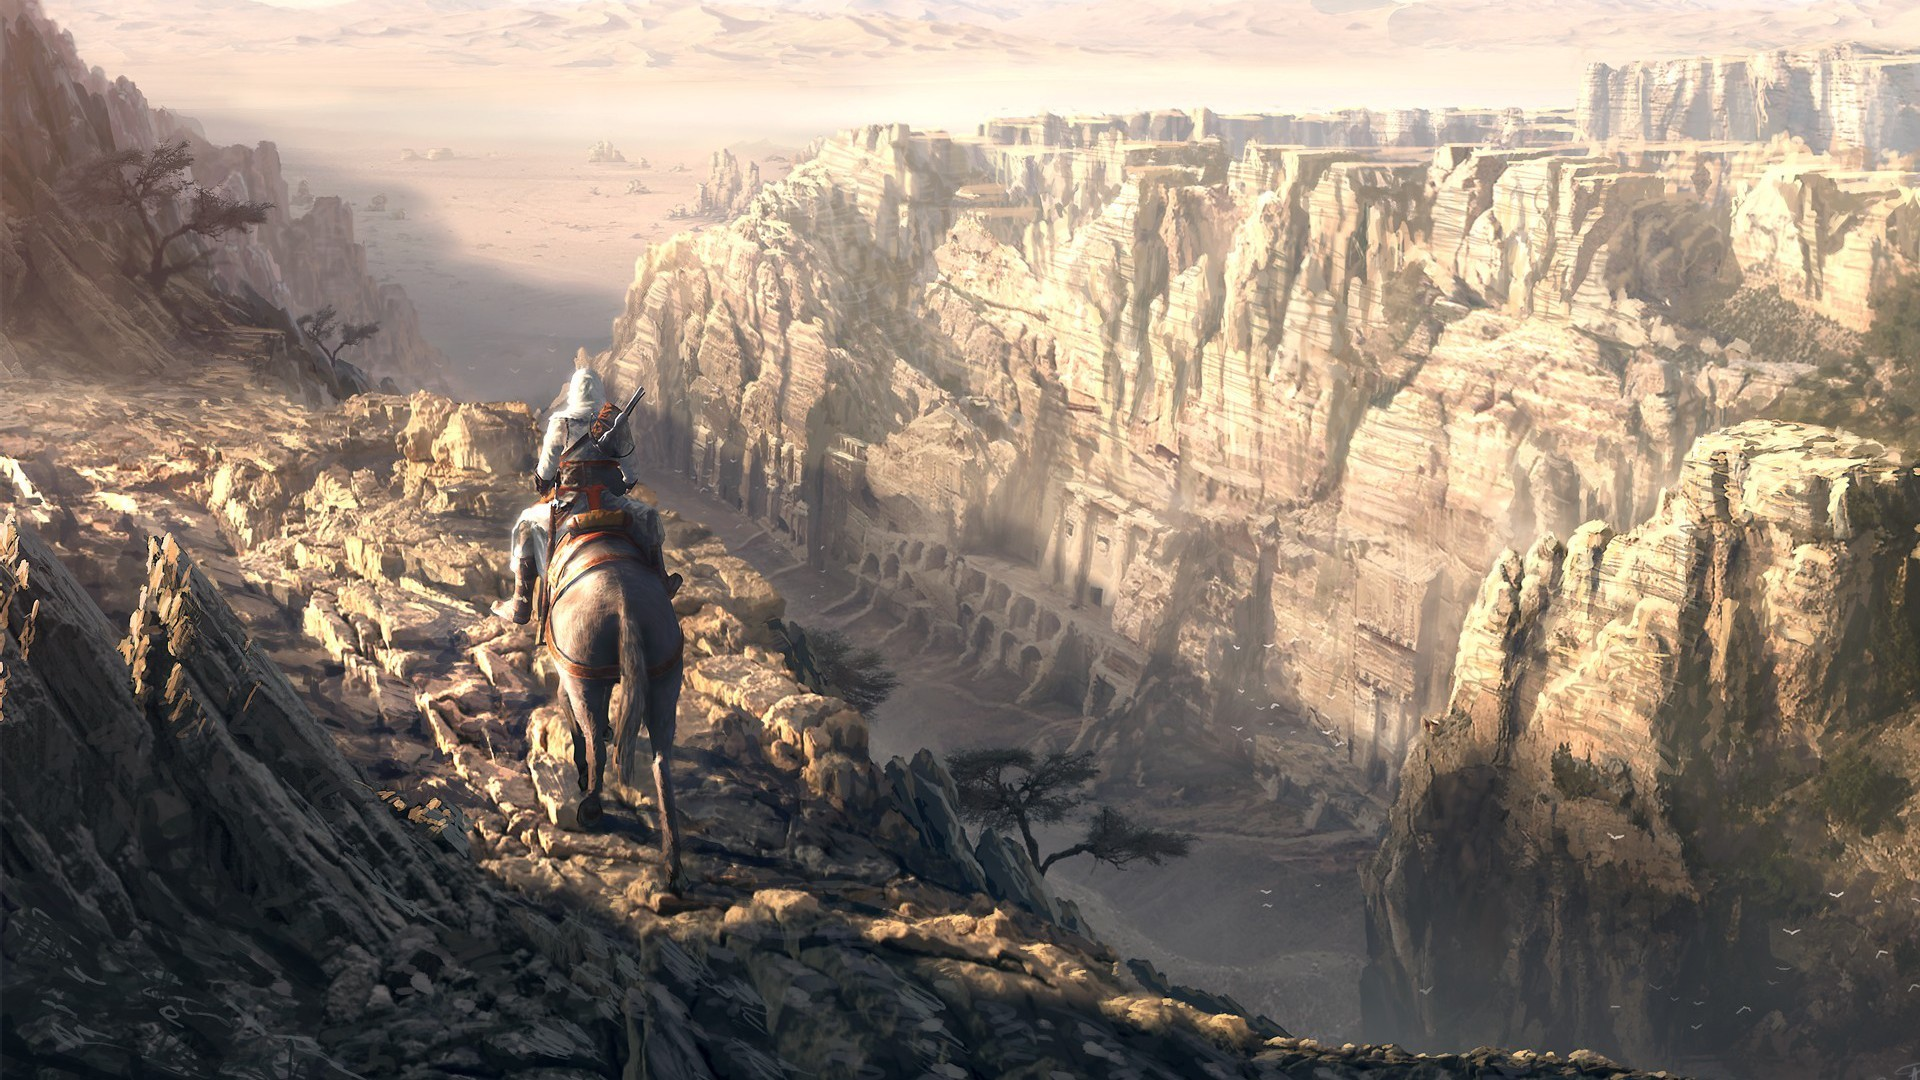 Mountains Landscapes assassins creed HD Wallpaper